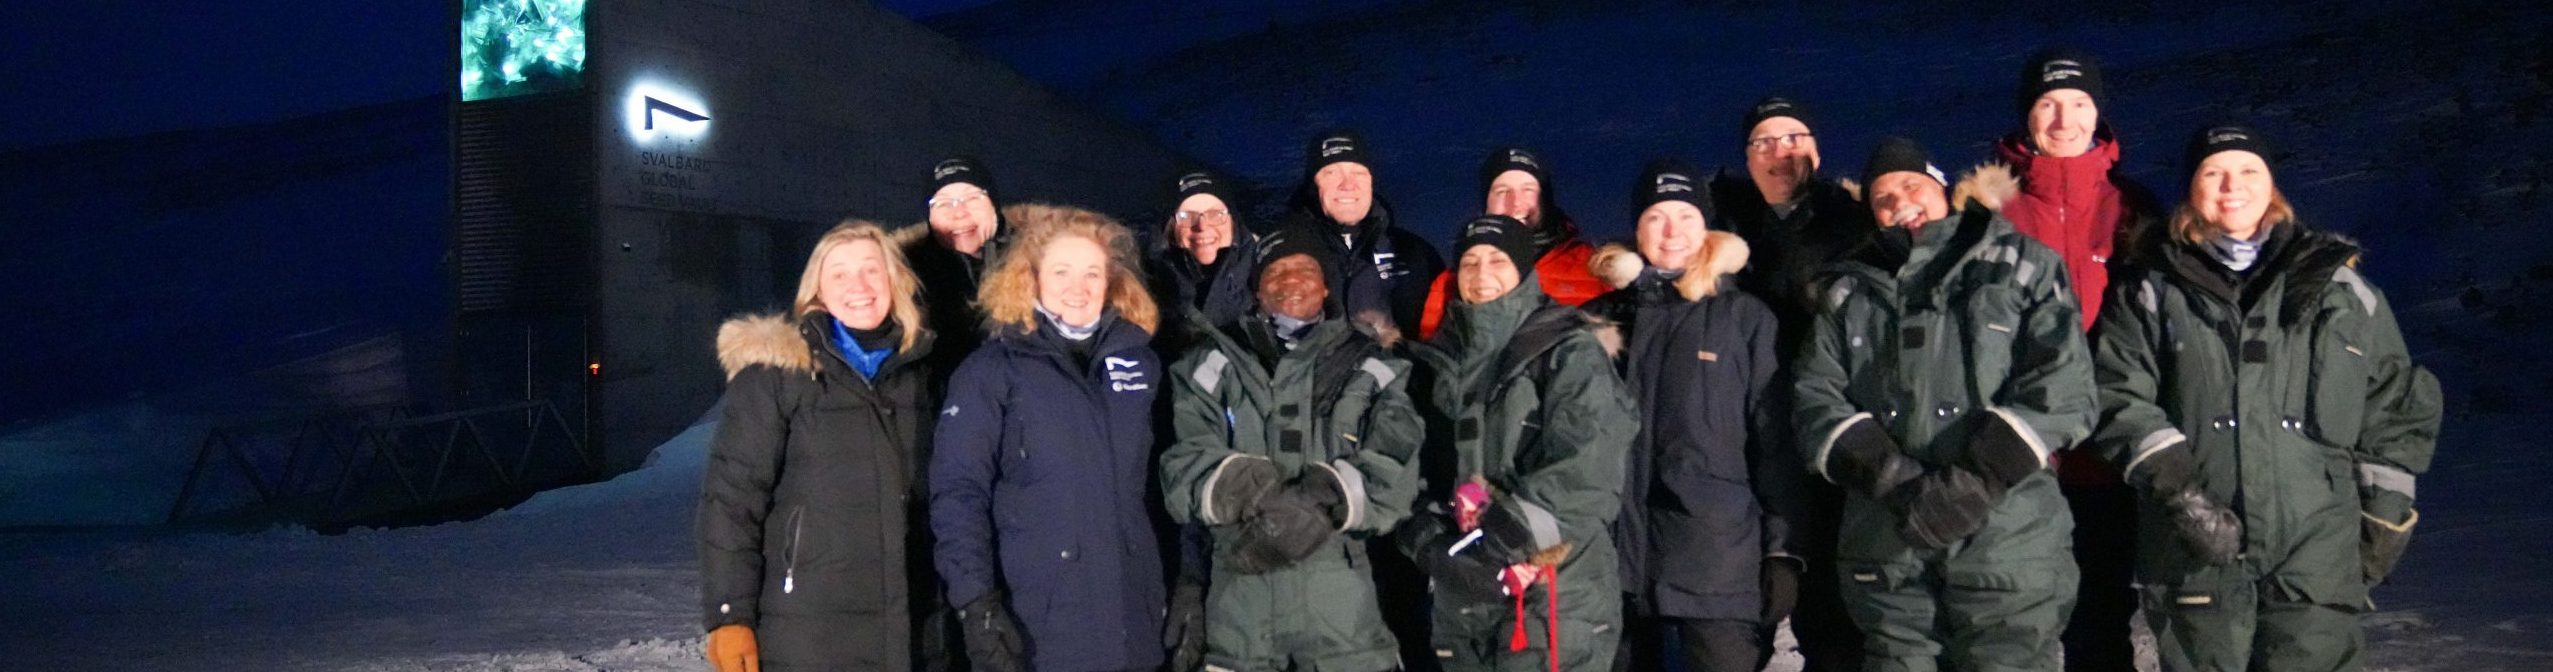 International Advisory Panel standing in front of Svalbard Global Seed Vault.